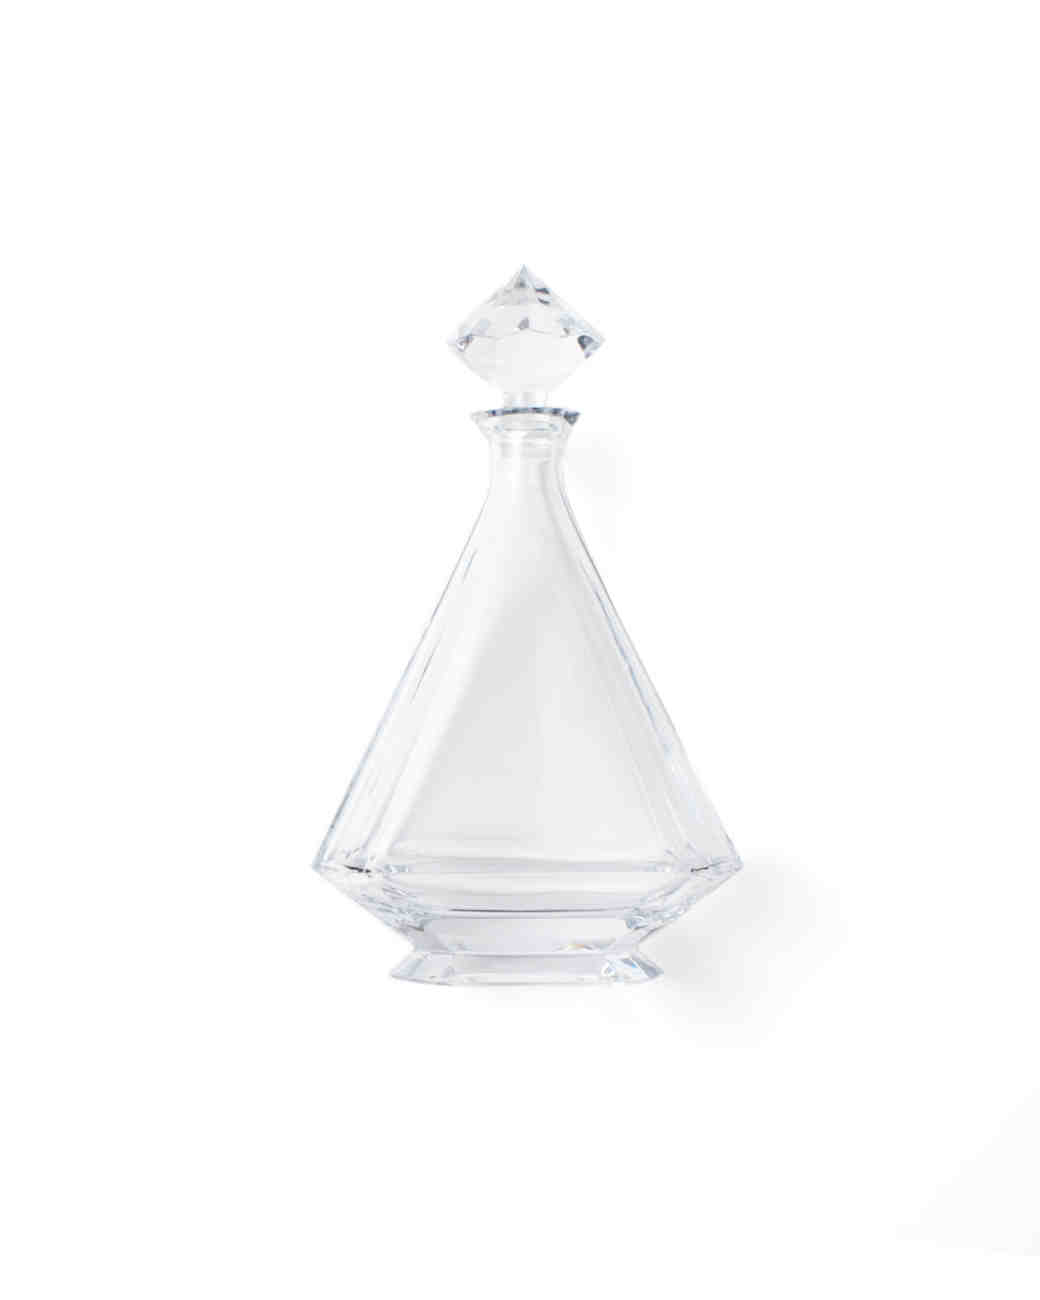 decanter-wd108931.jpg